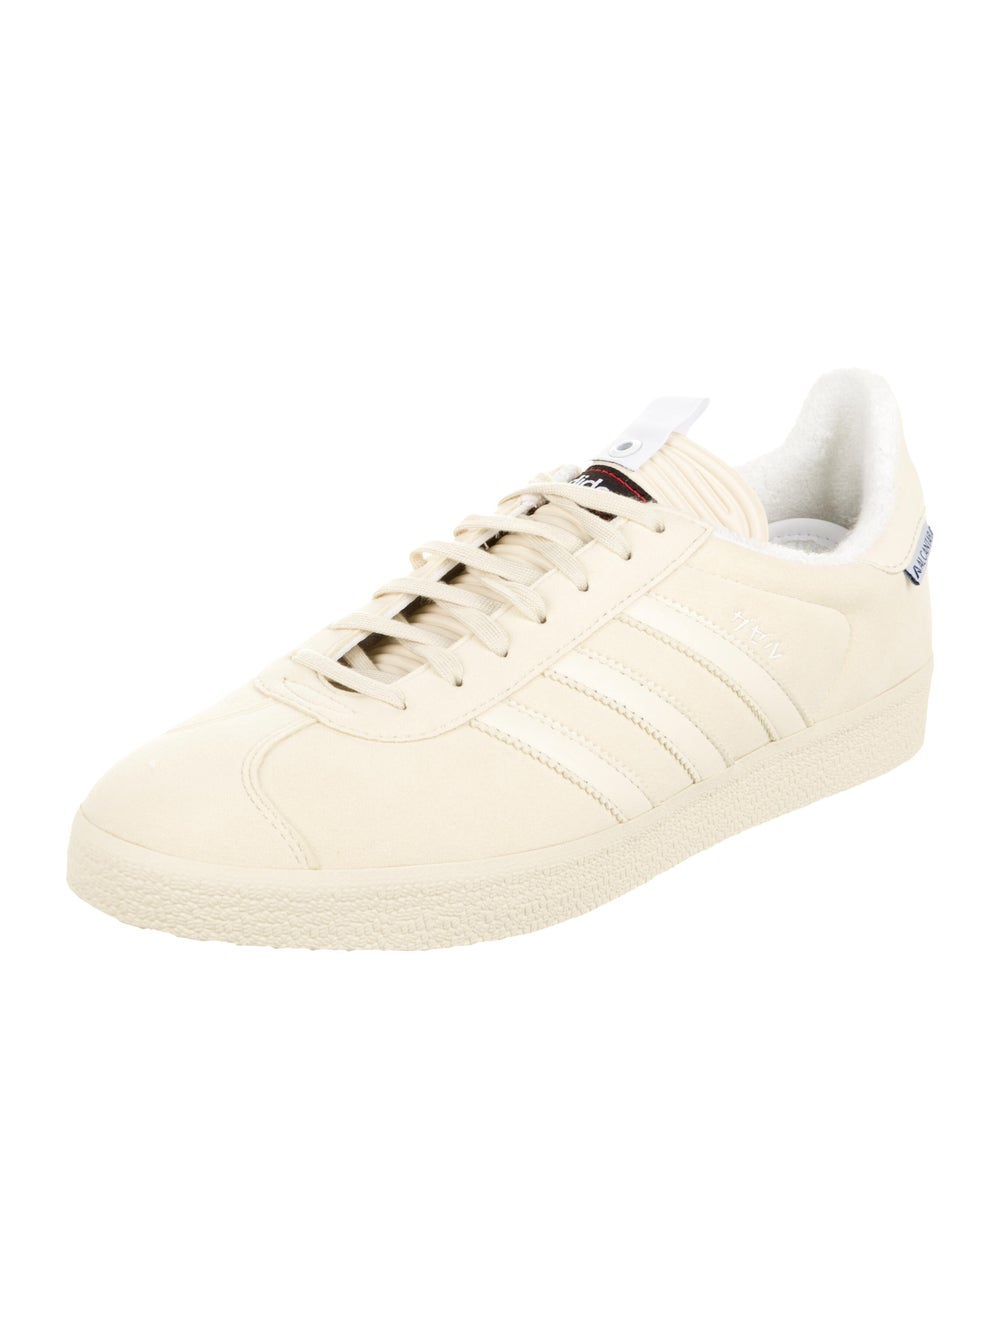 Adidas Gazelle SE Low-Top Sneakers w/ Tags - image 2